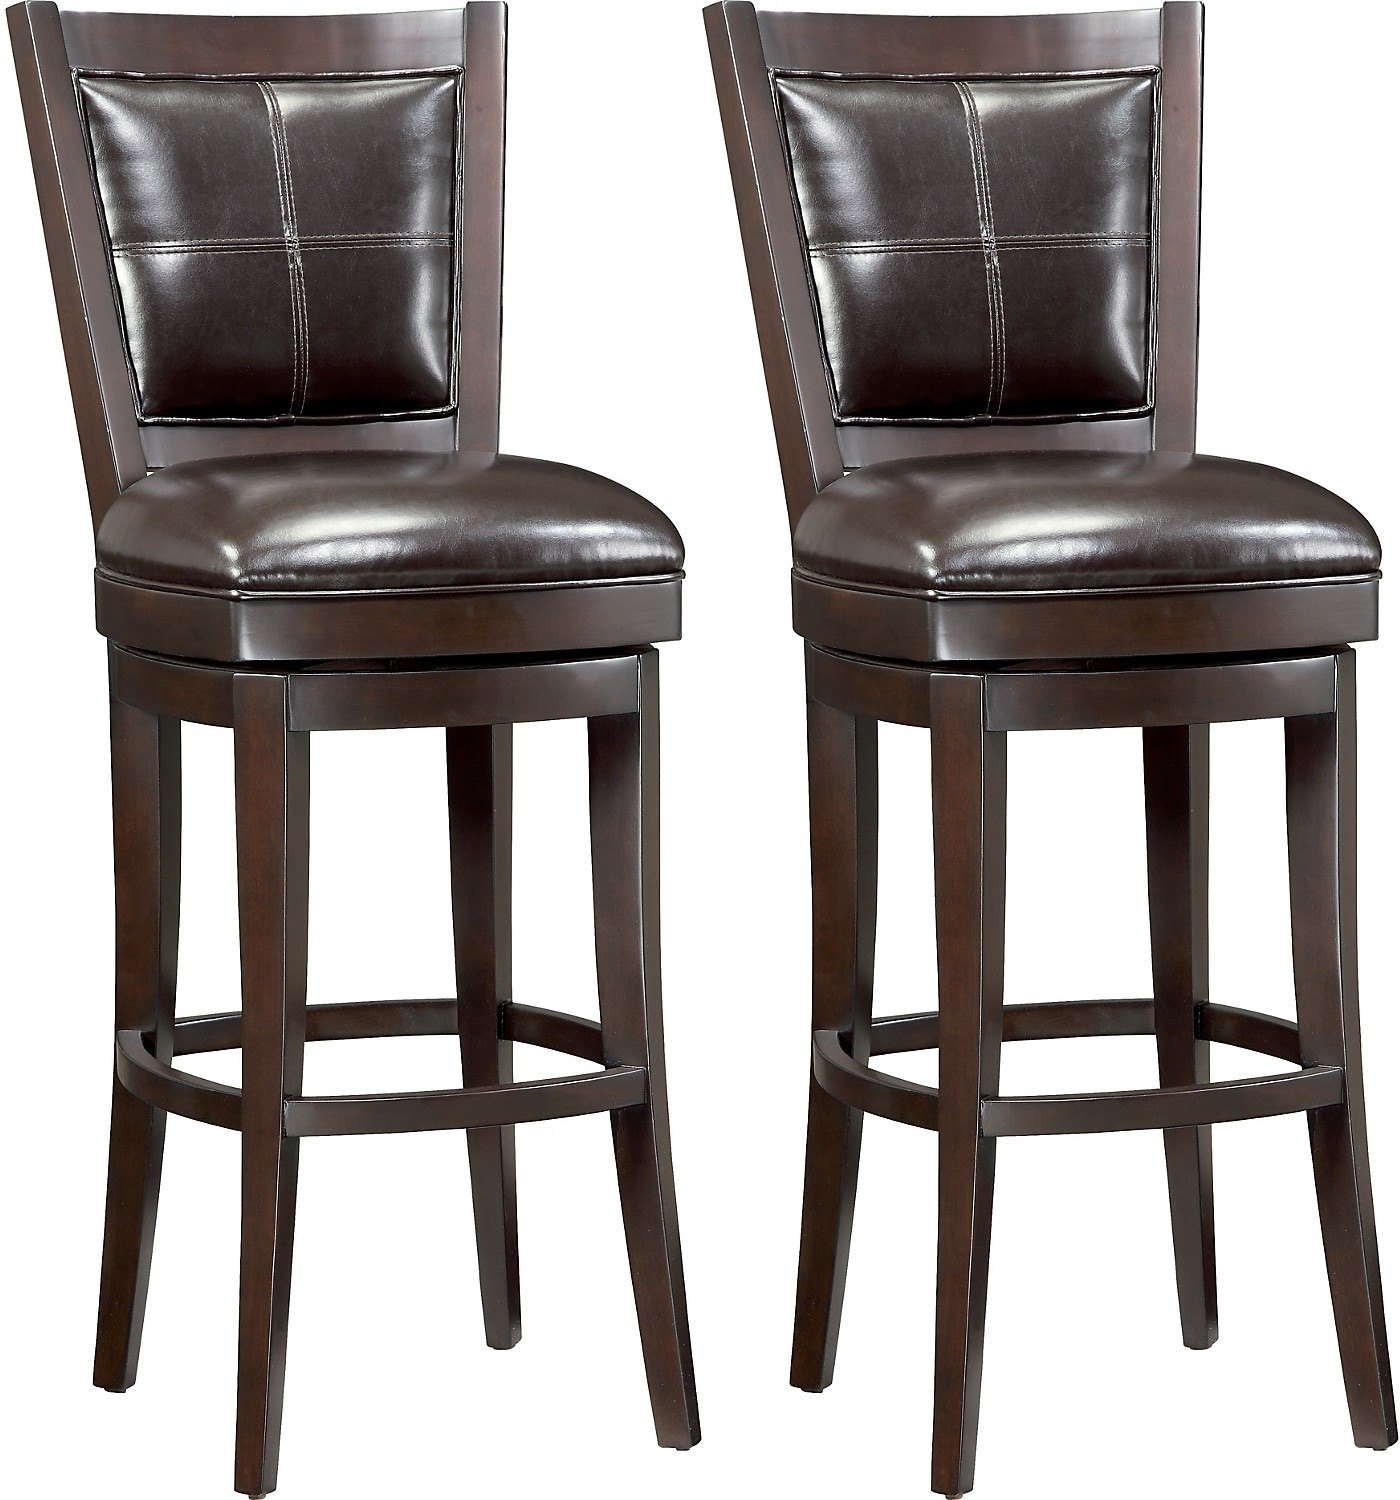 "Dining Room Furniture - Chase 30"" Bar Stools, Set of 2"